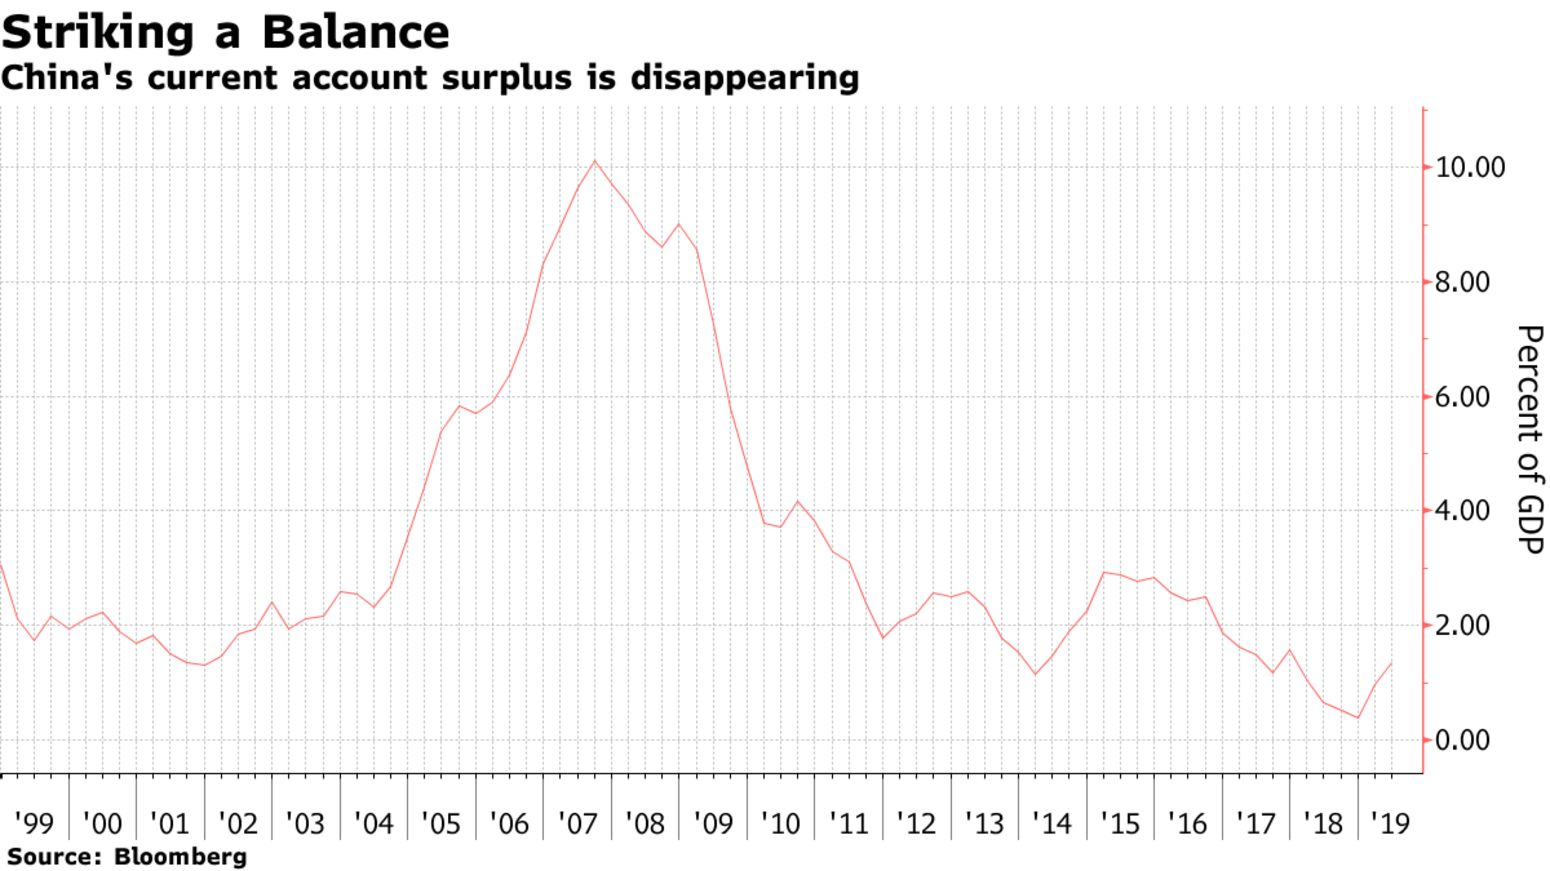 China's current account surplus is disappearing